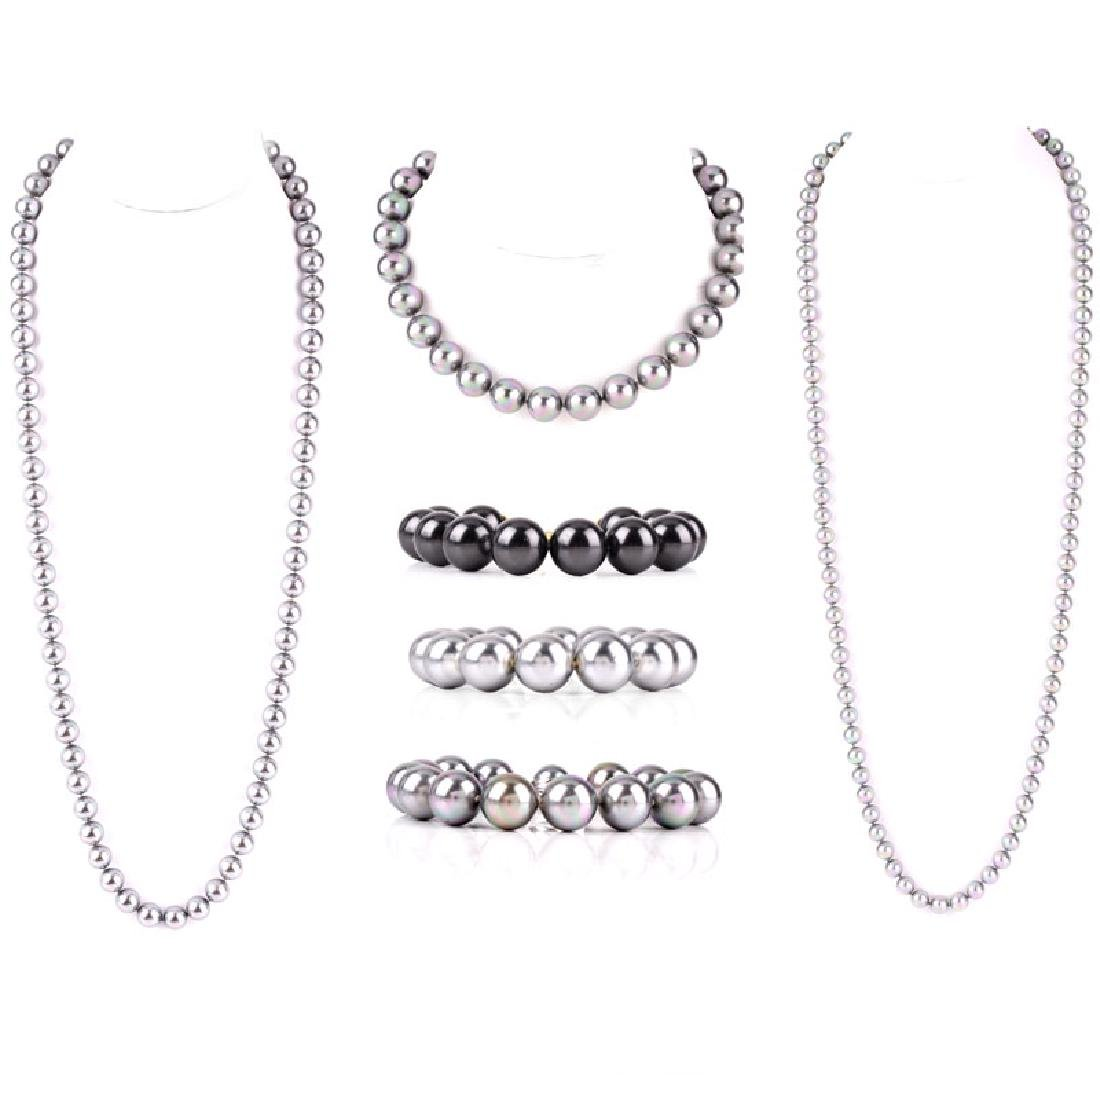 Four (4) Majorica Pearl Necklaces and Bracelet